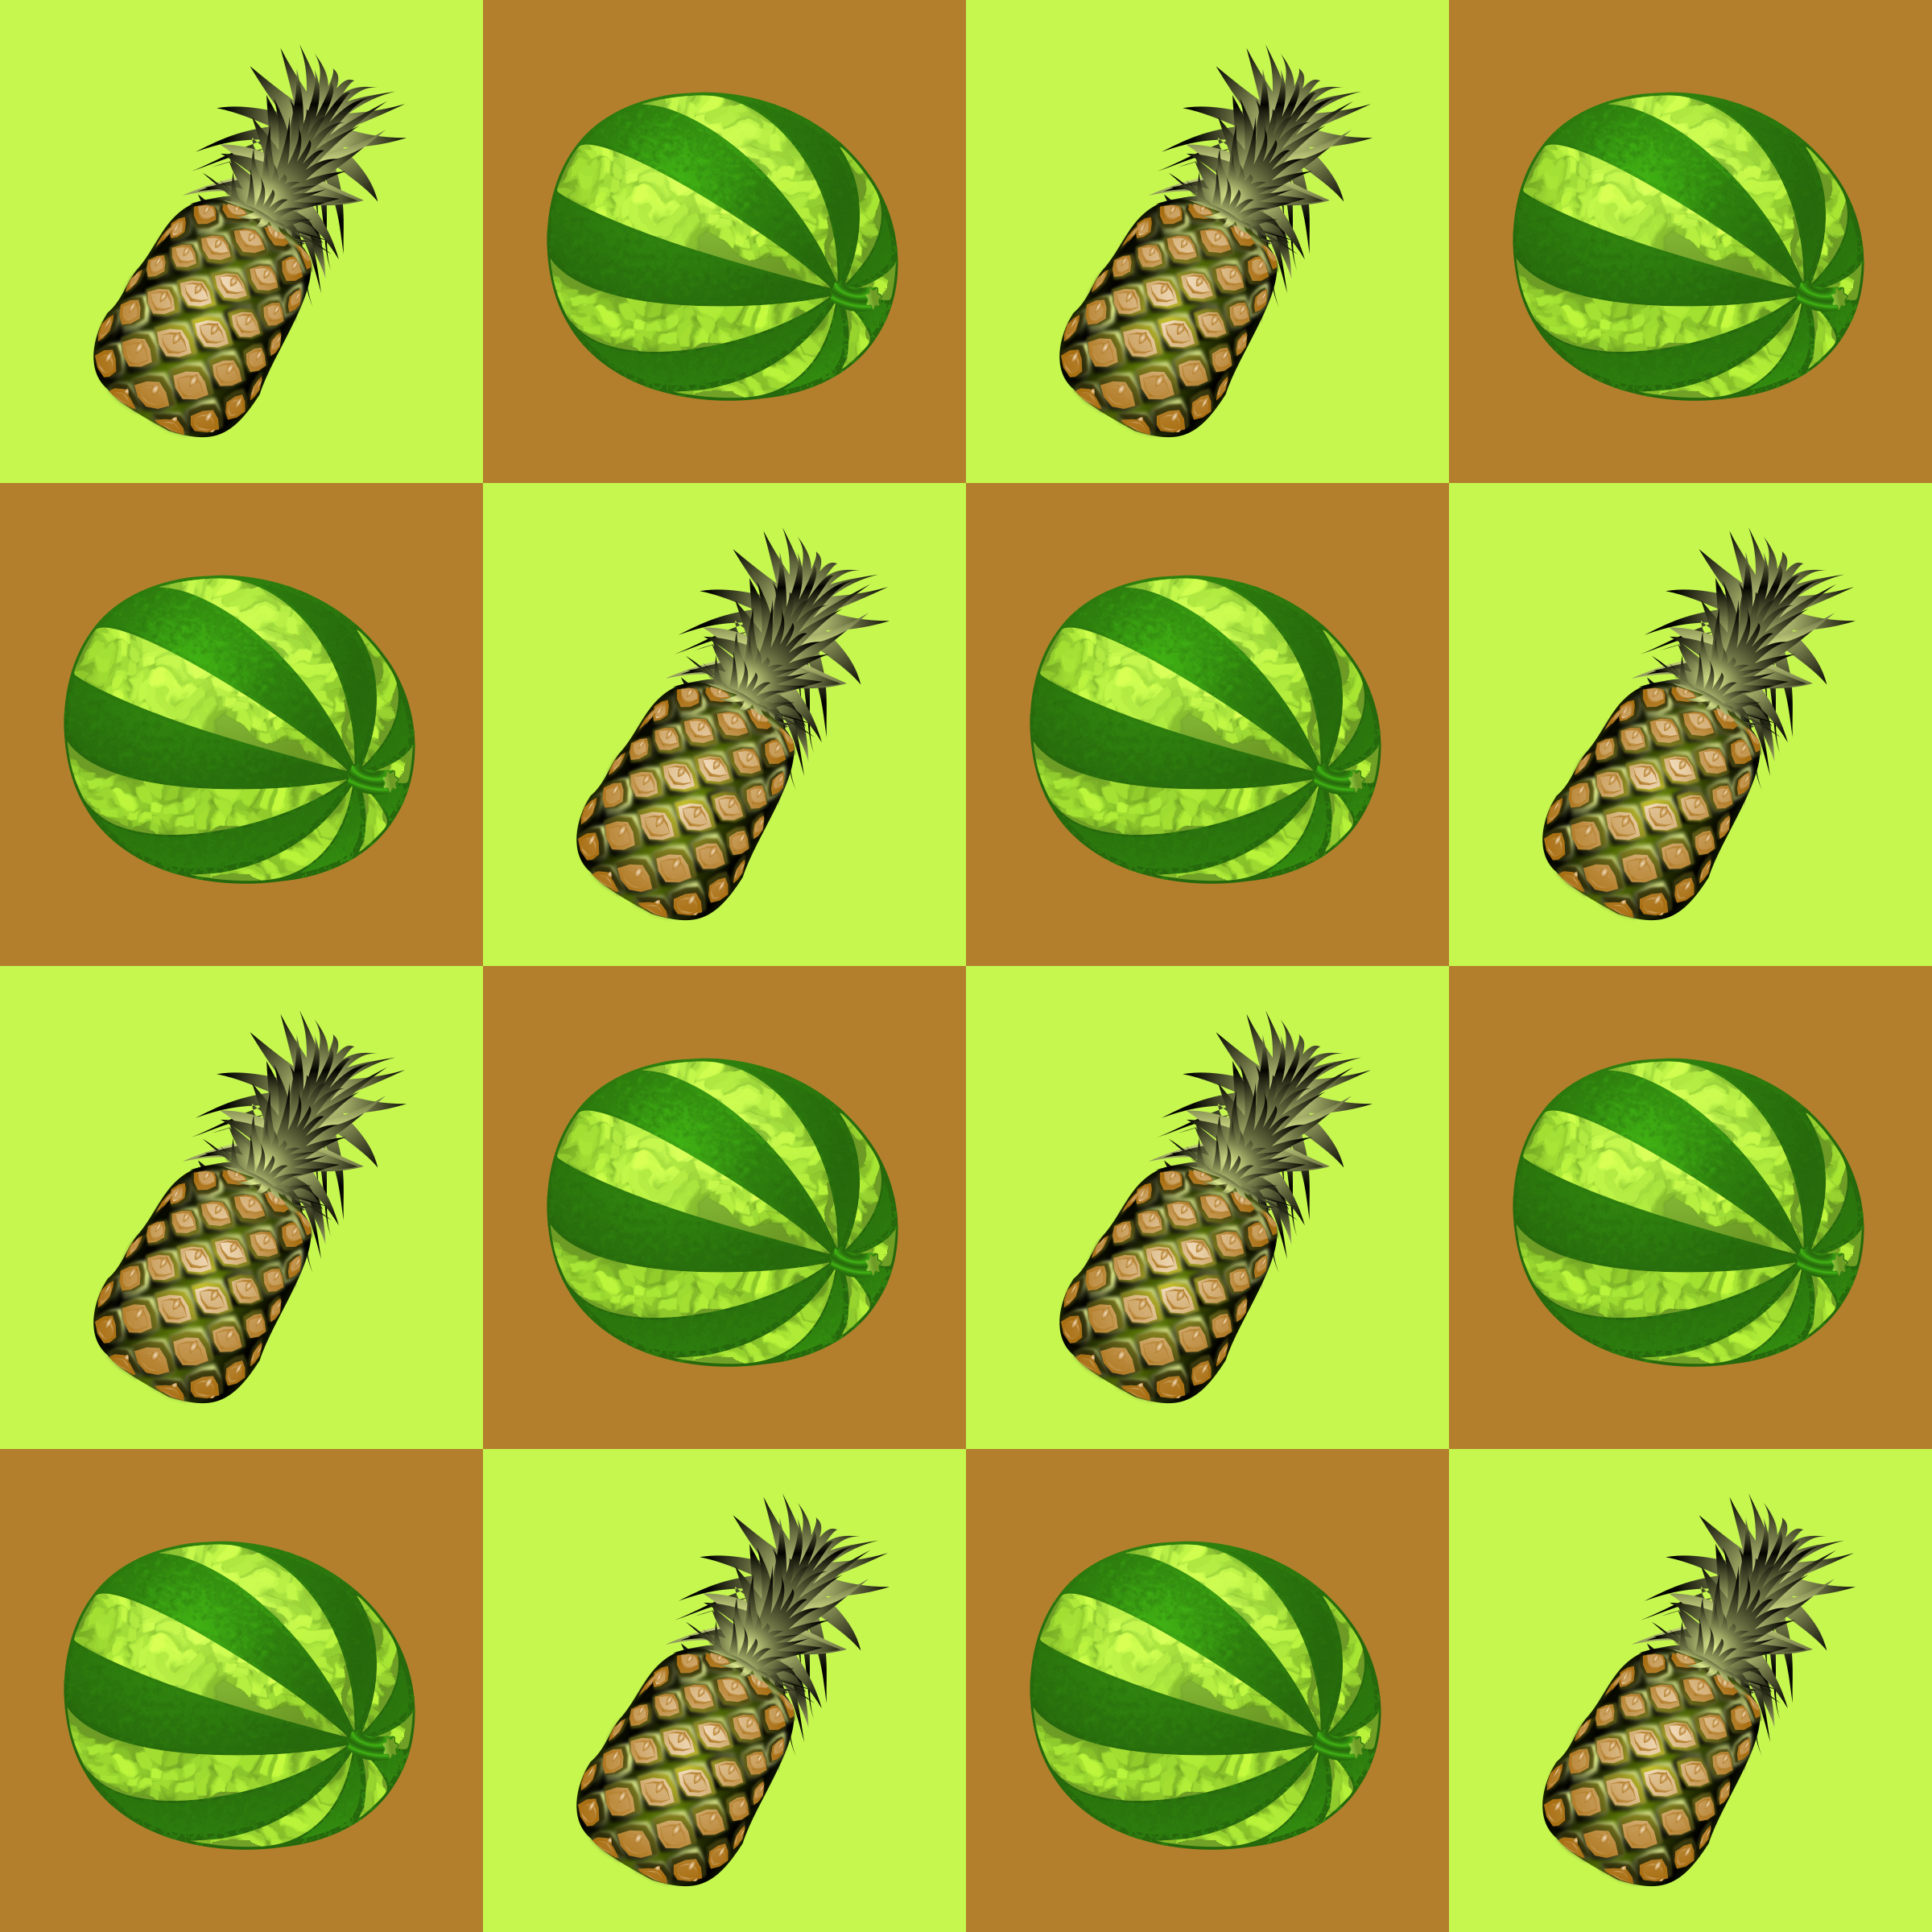 Fruit pattern 2 by Firkin